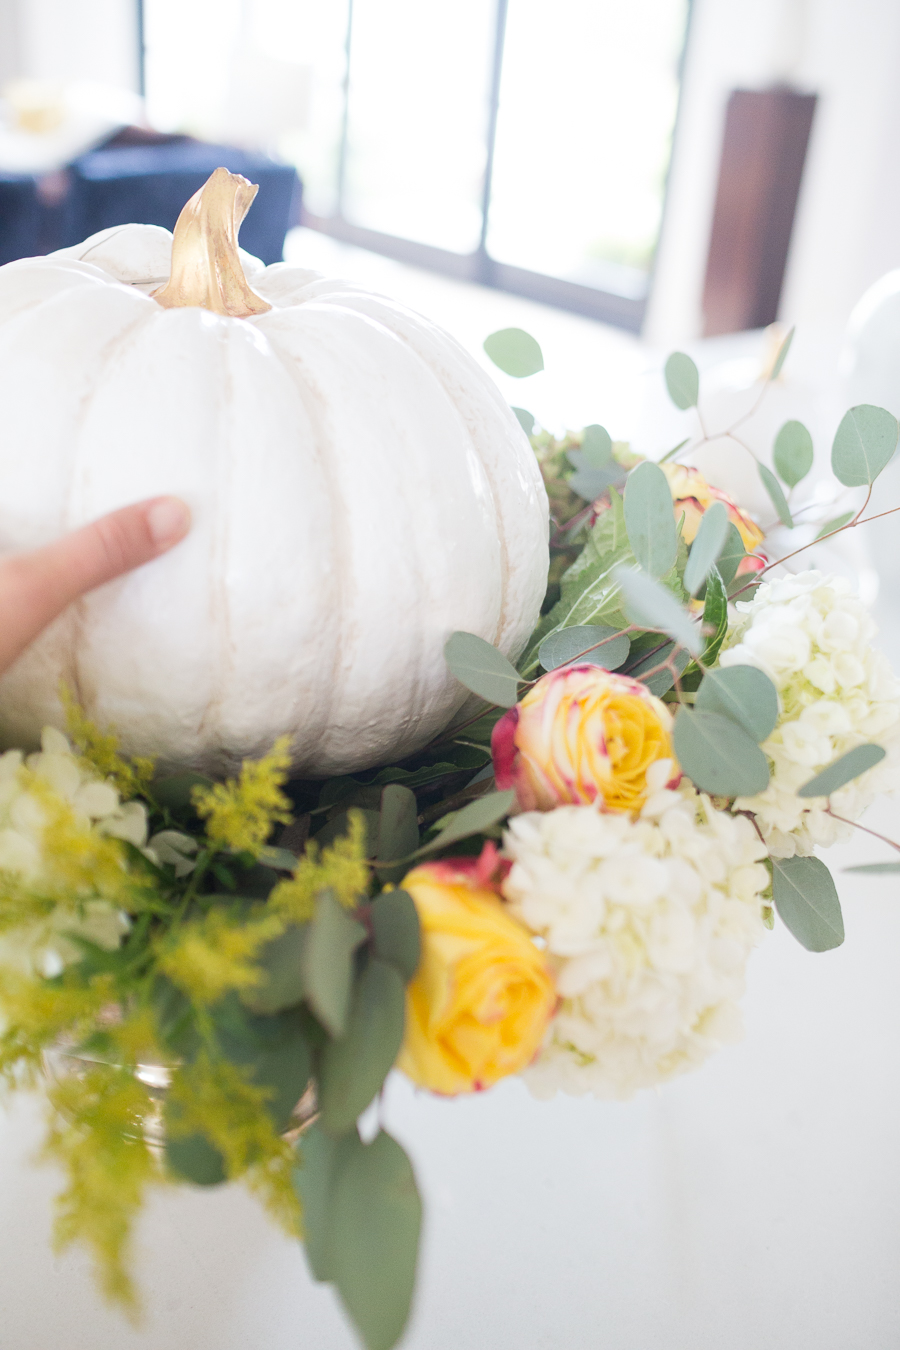 DIY Silver Urn Pumpkin Centerpiece for Fall floral sponges inside of a silver urn for a DIY fall centerpiece